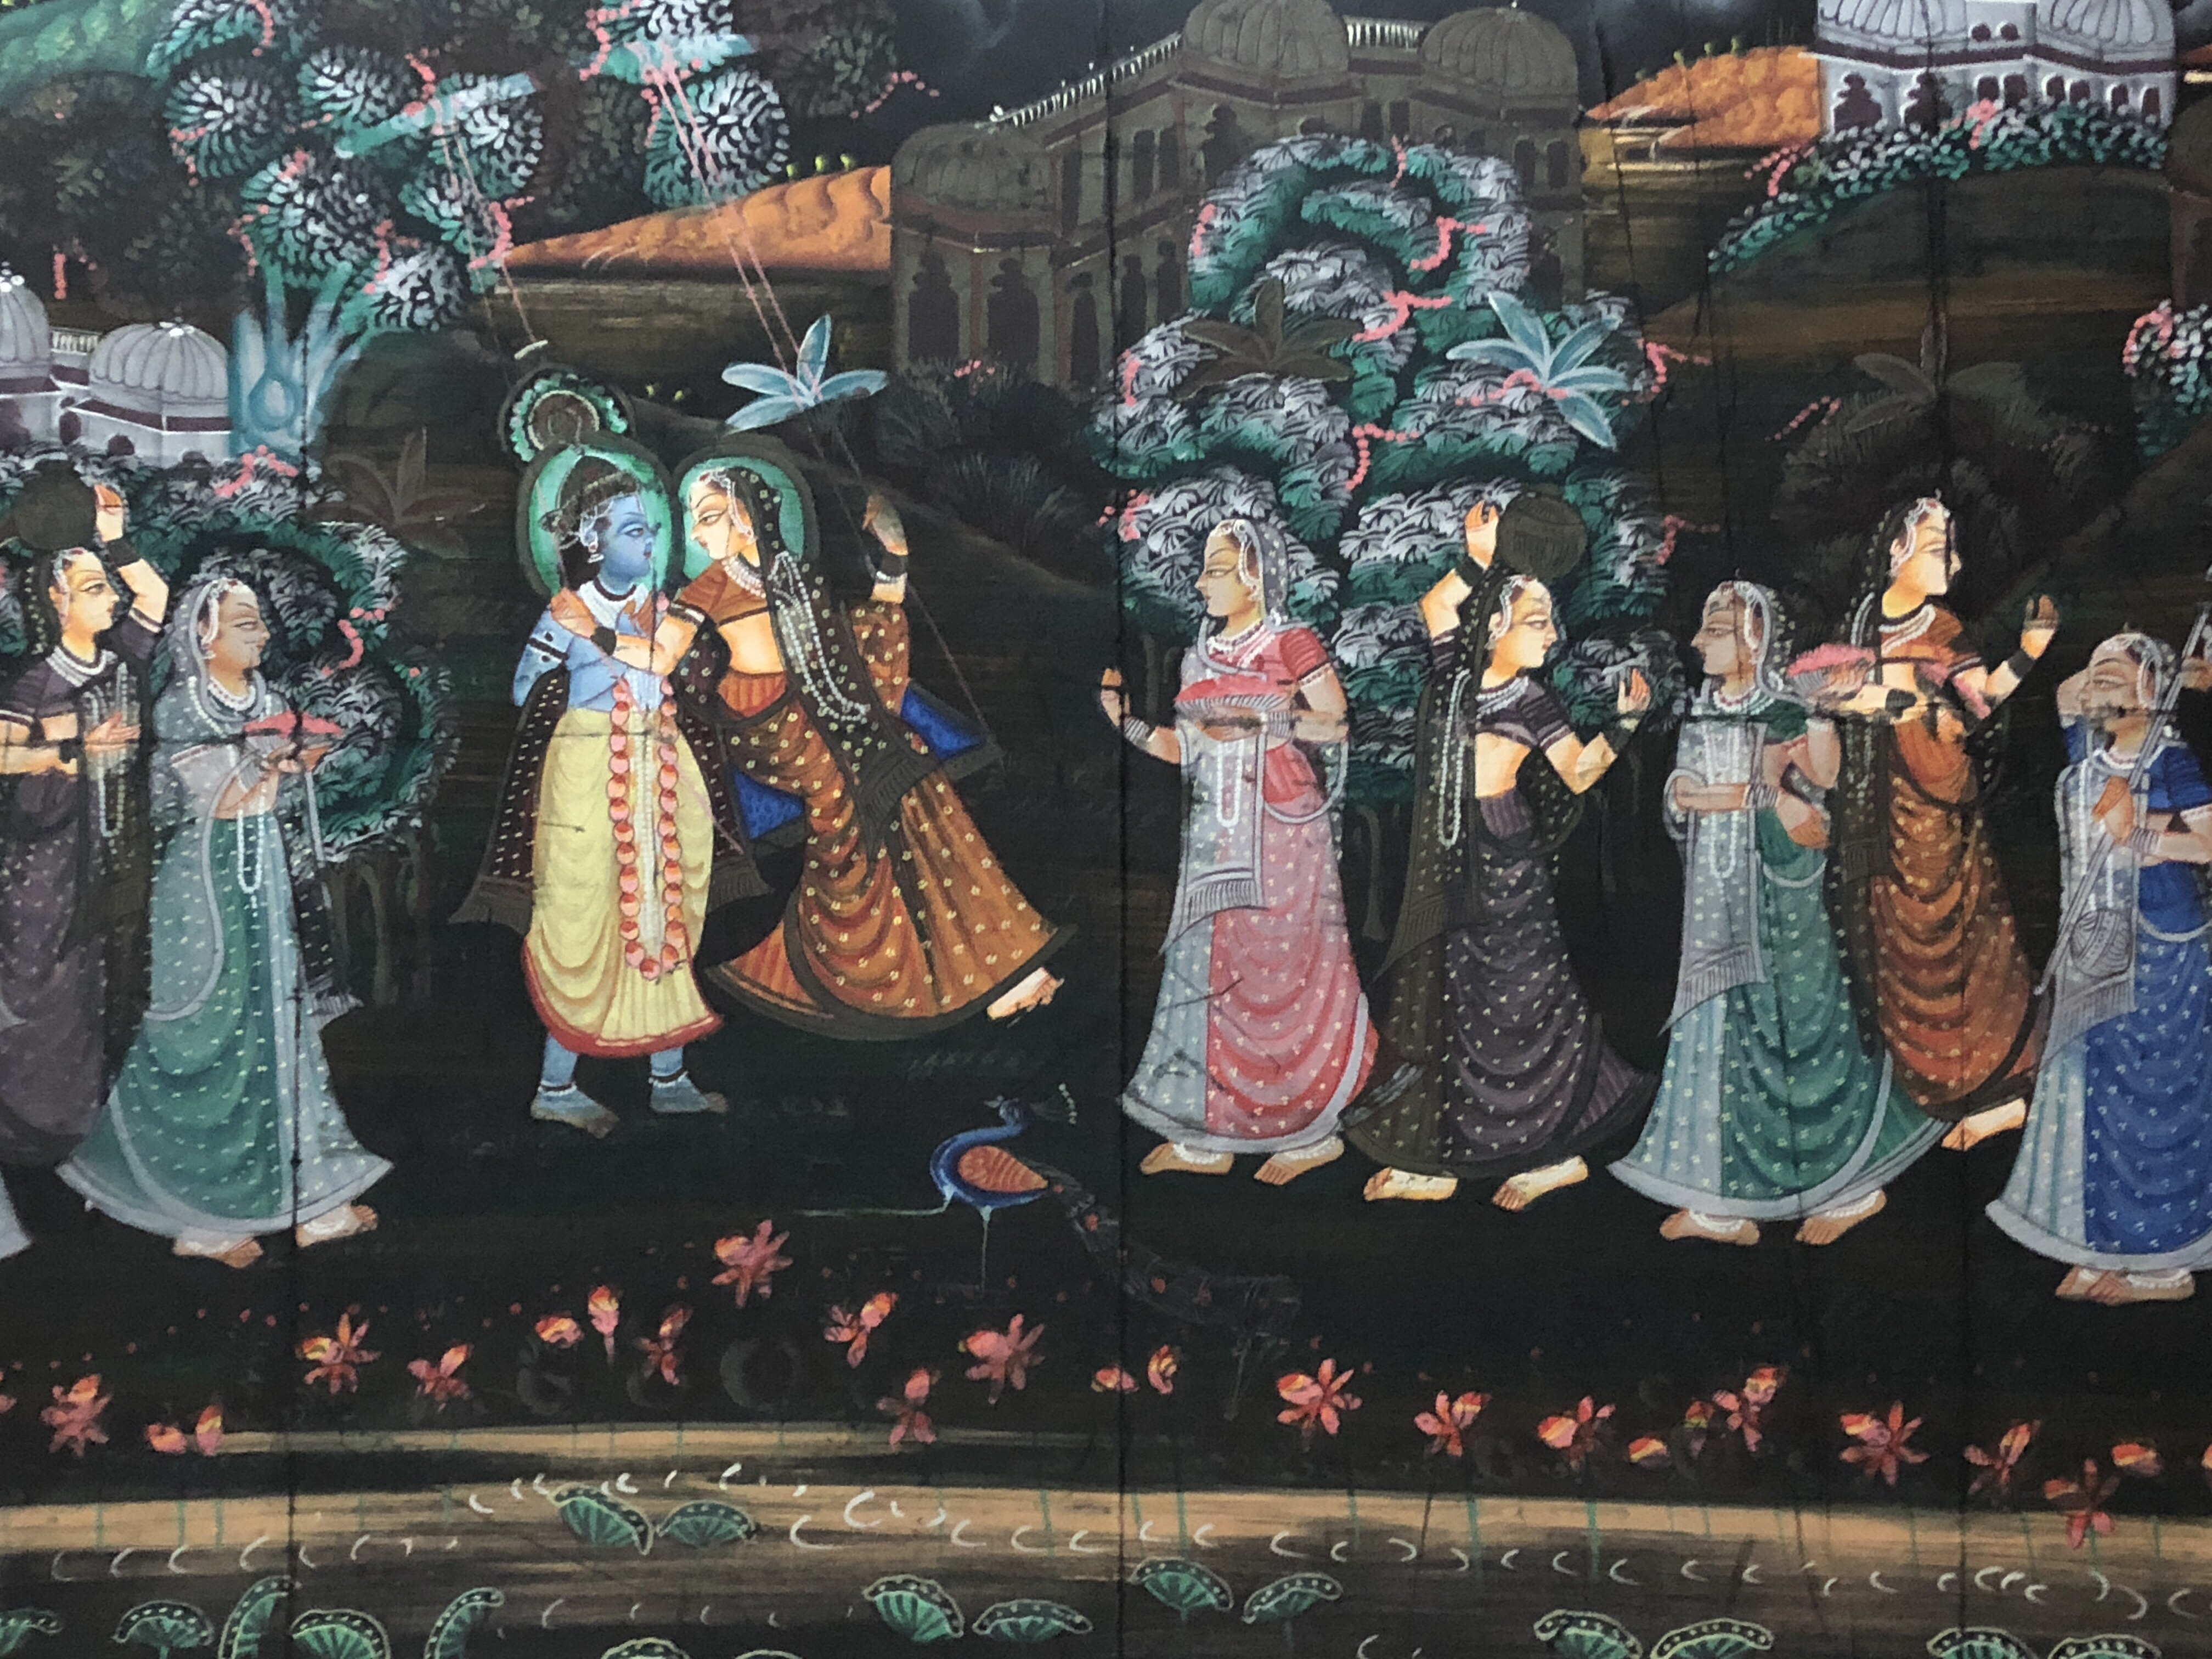 Krishna dancing with gopis along Yamuna river